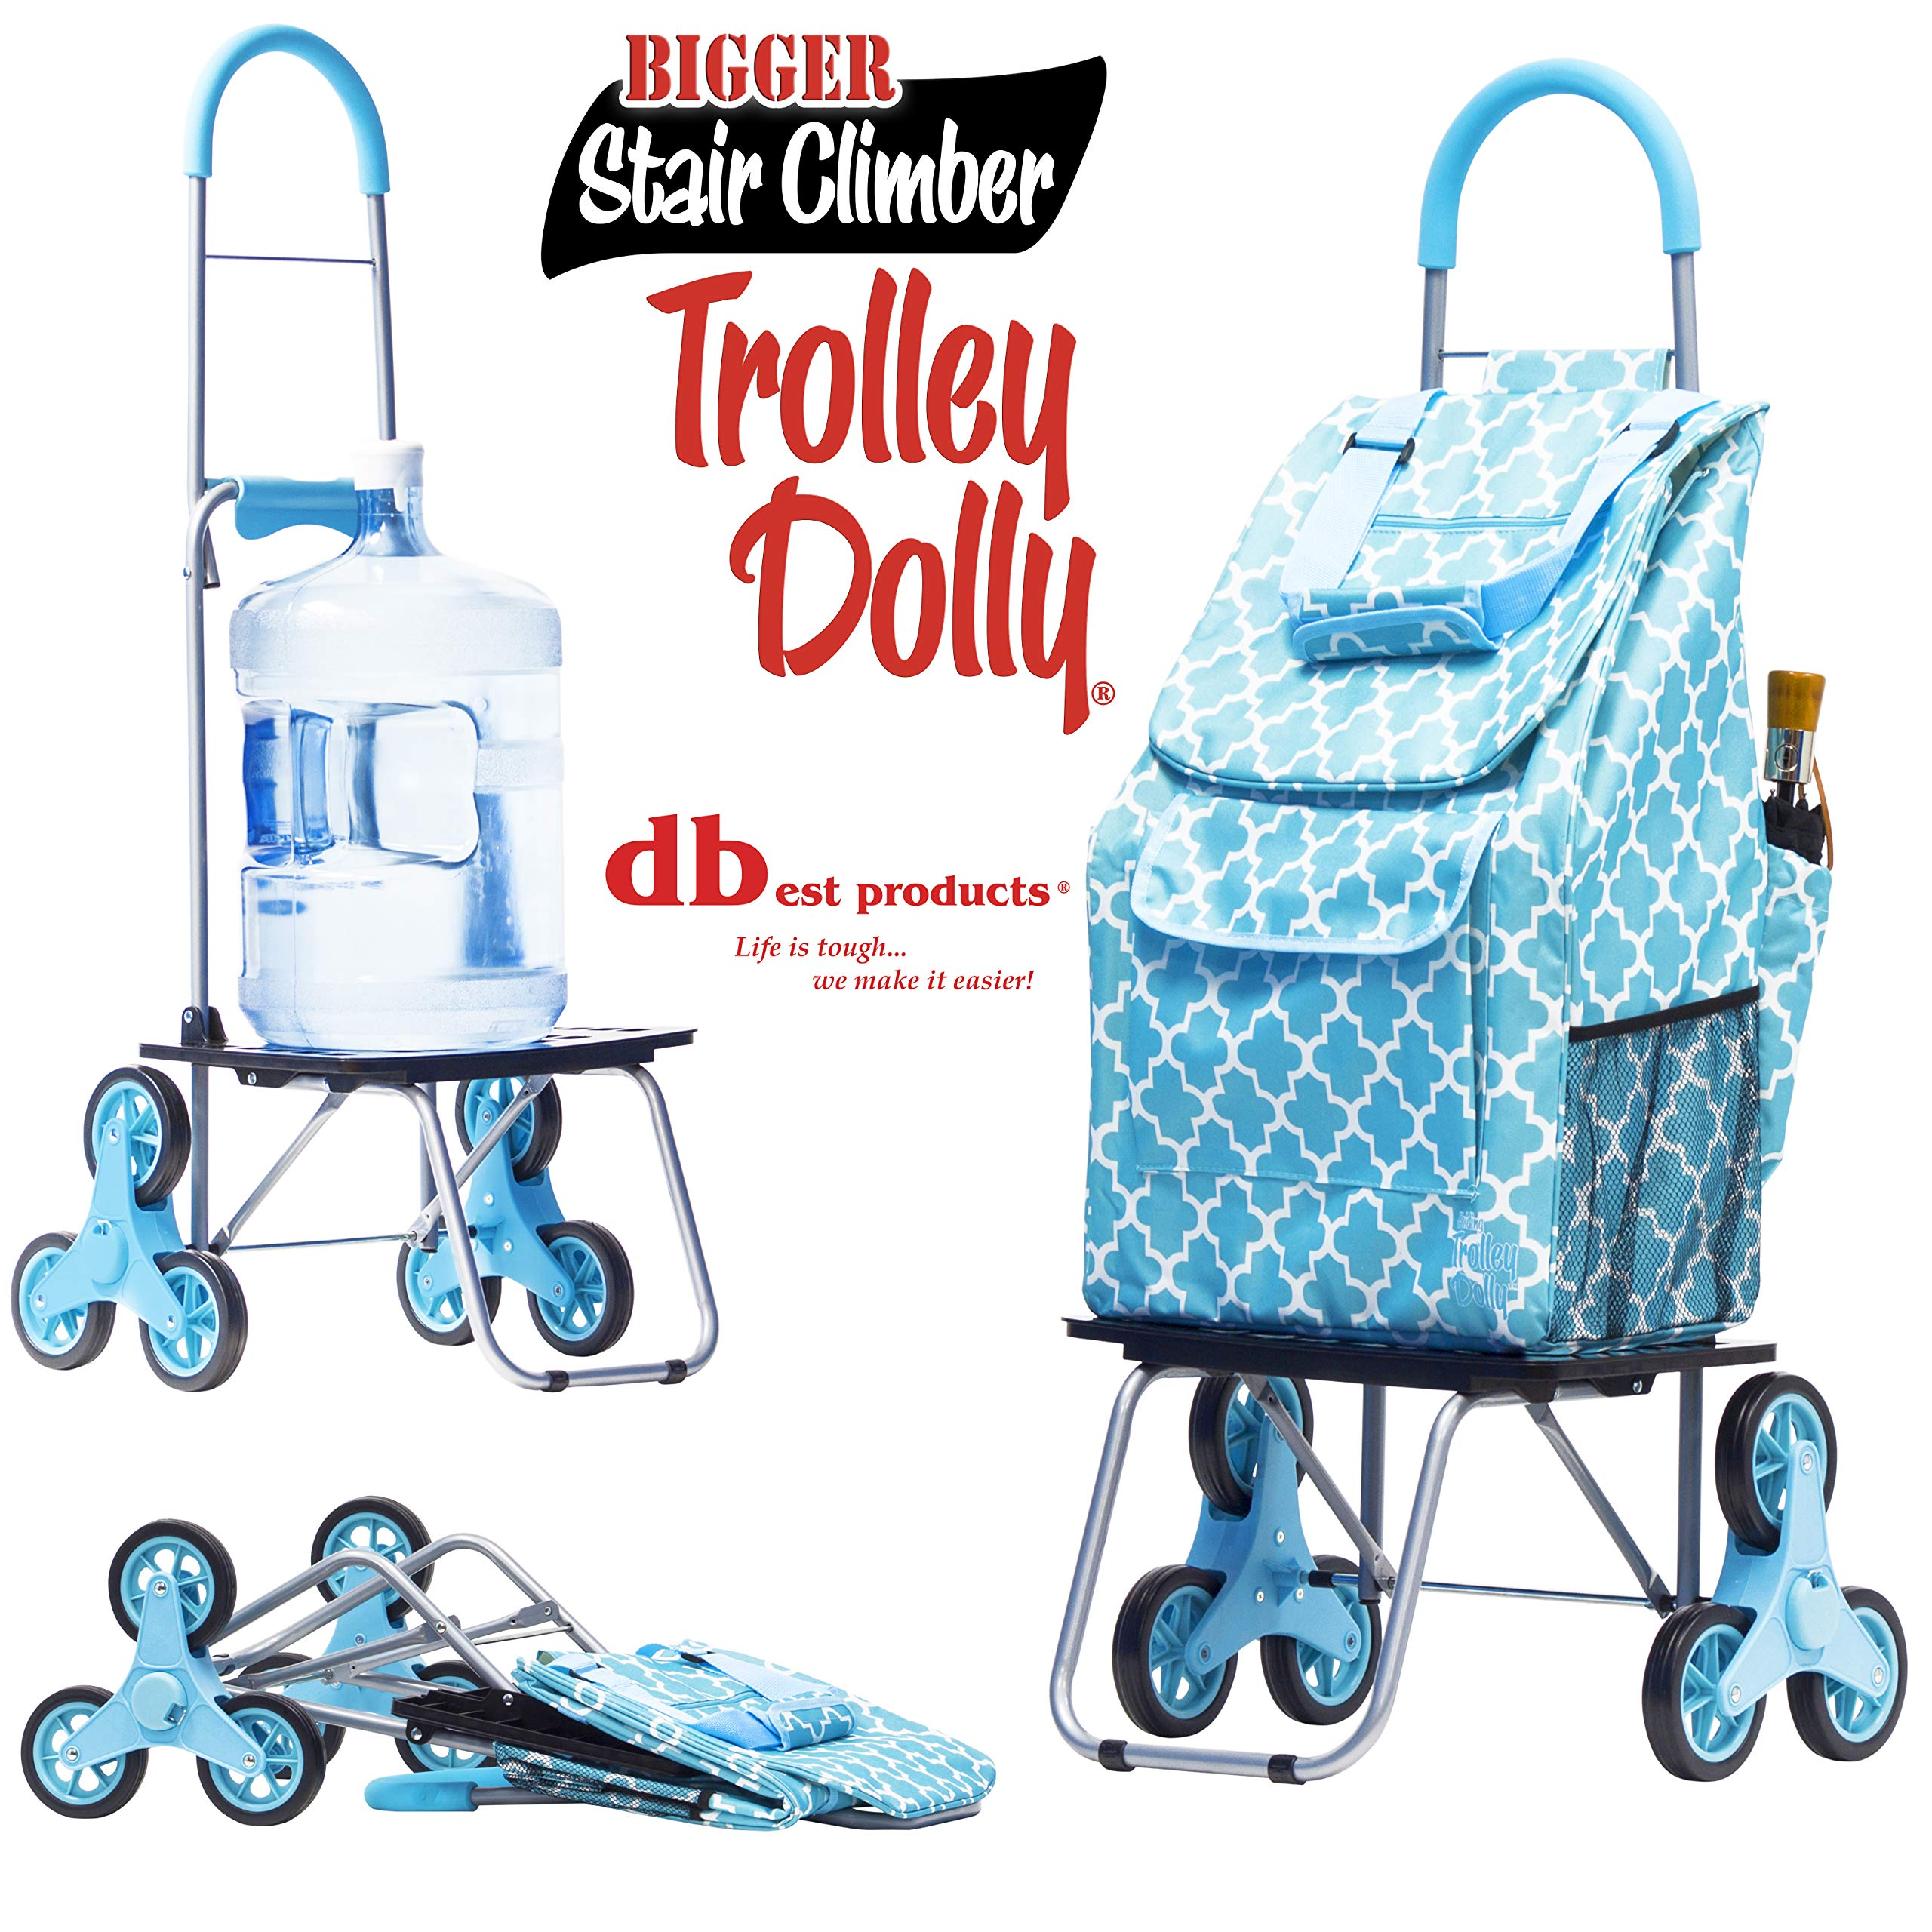 dbest products Stair Climber Bigger Trolley Dolly, Moroccan Tile  Shopping Grocery Foldable Cart Condo Apartment Grocery Foldable Cart Condo Apartment